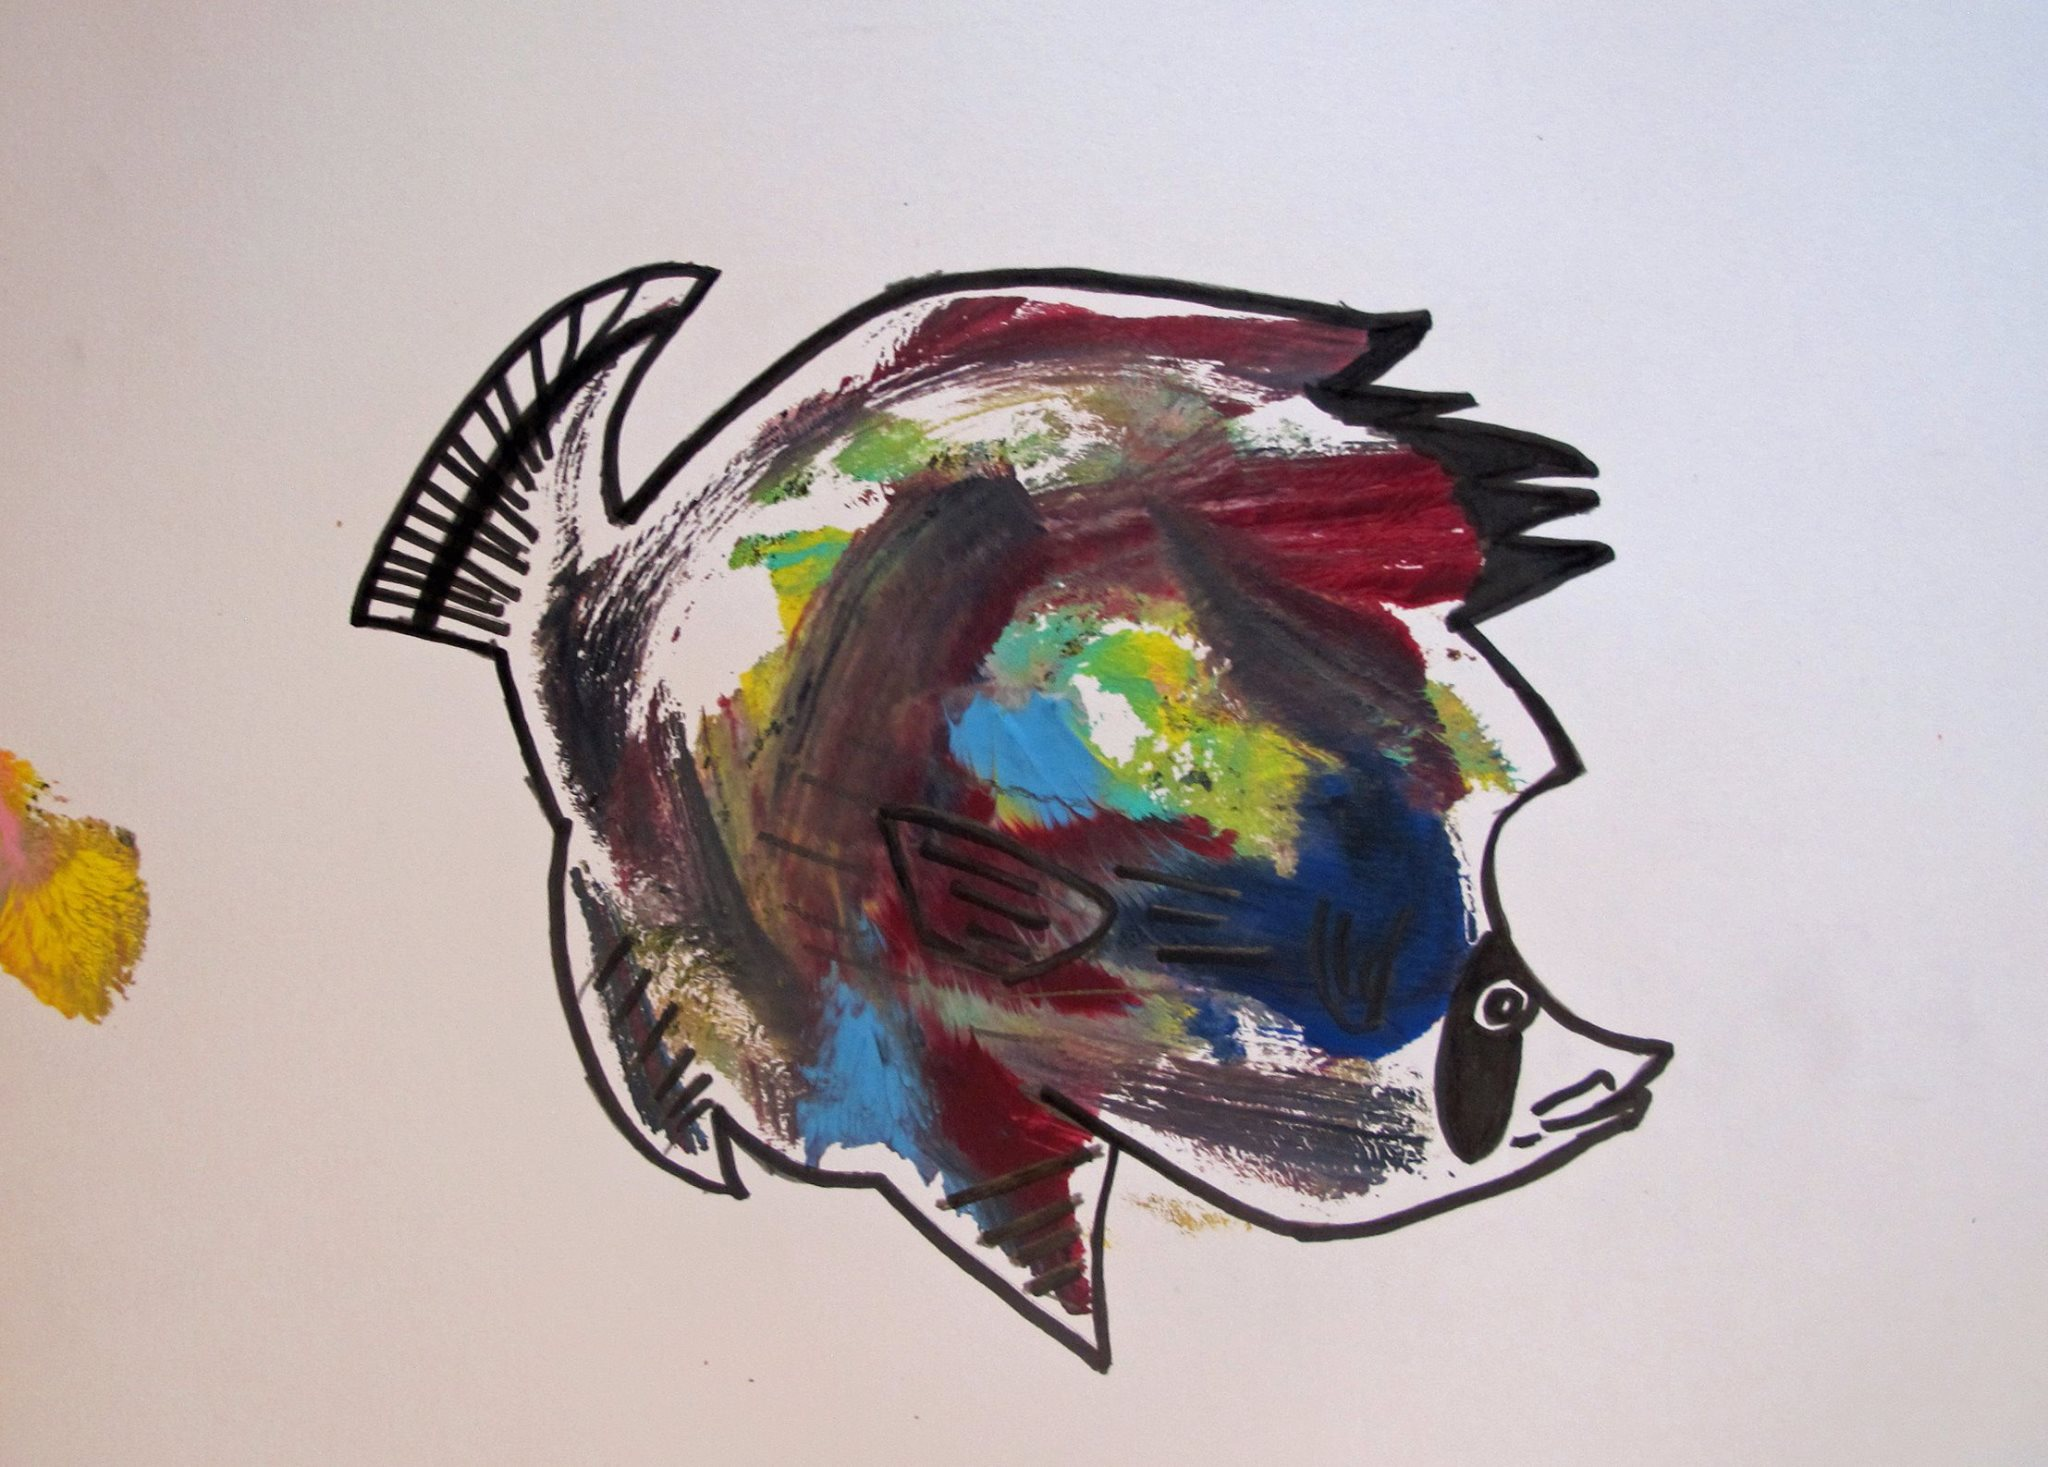 Rainbow (breast) fish ,acrylic and ink on paper, 9x12, 2014